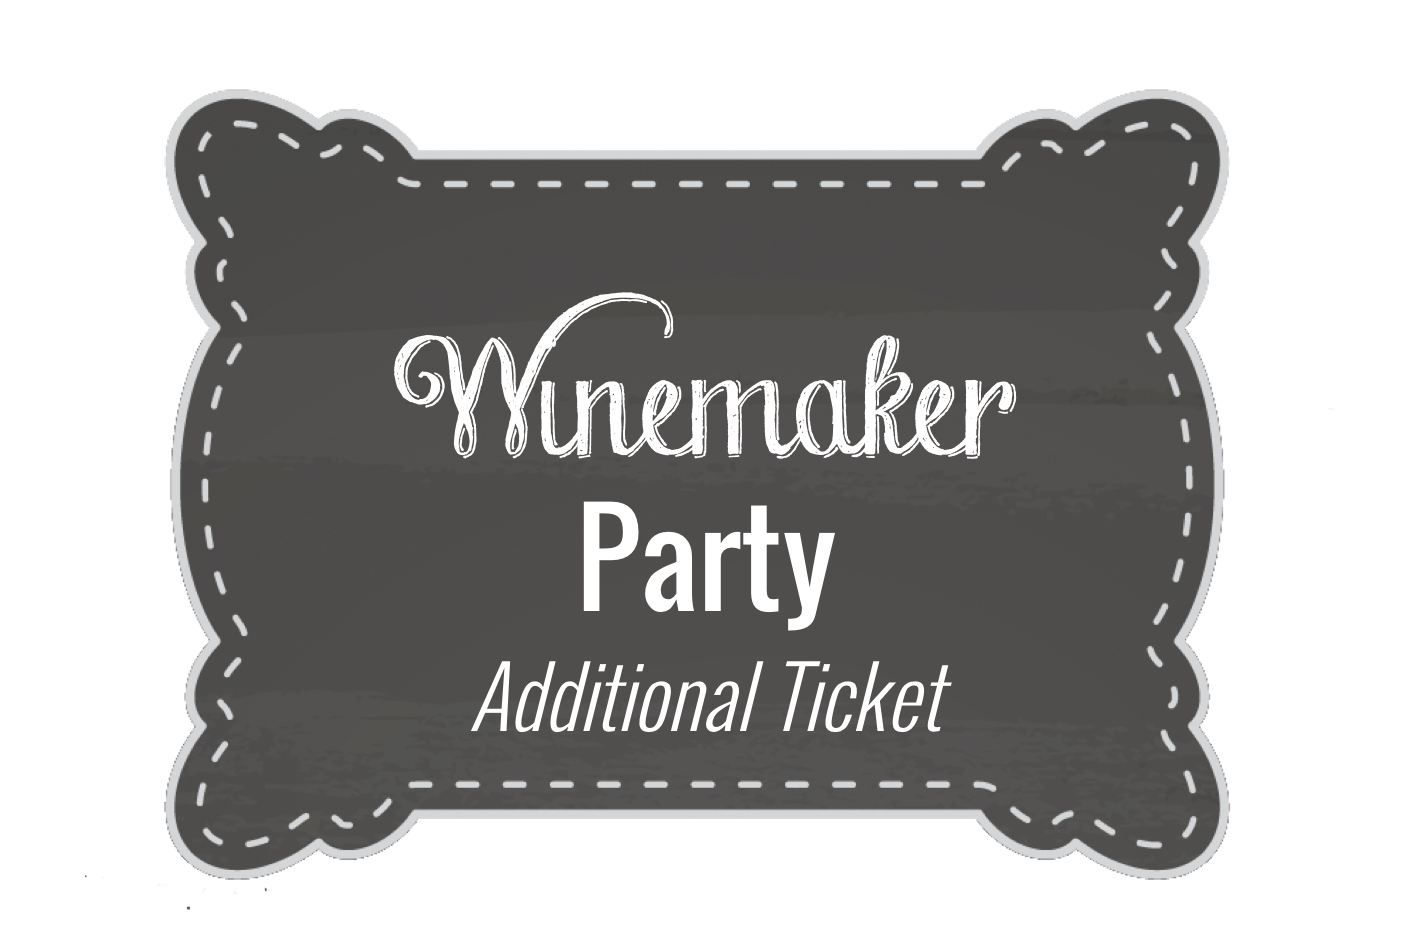 Winemaker Party Additional Ticket Product Image